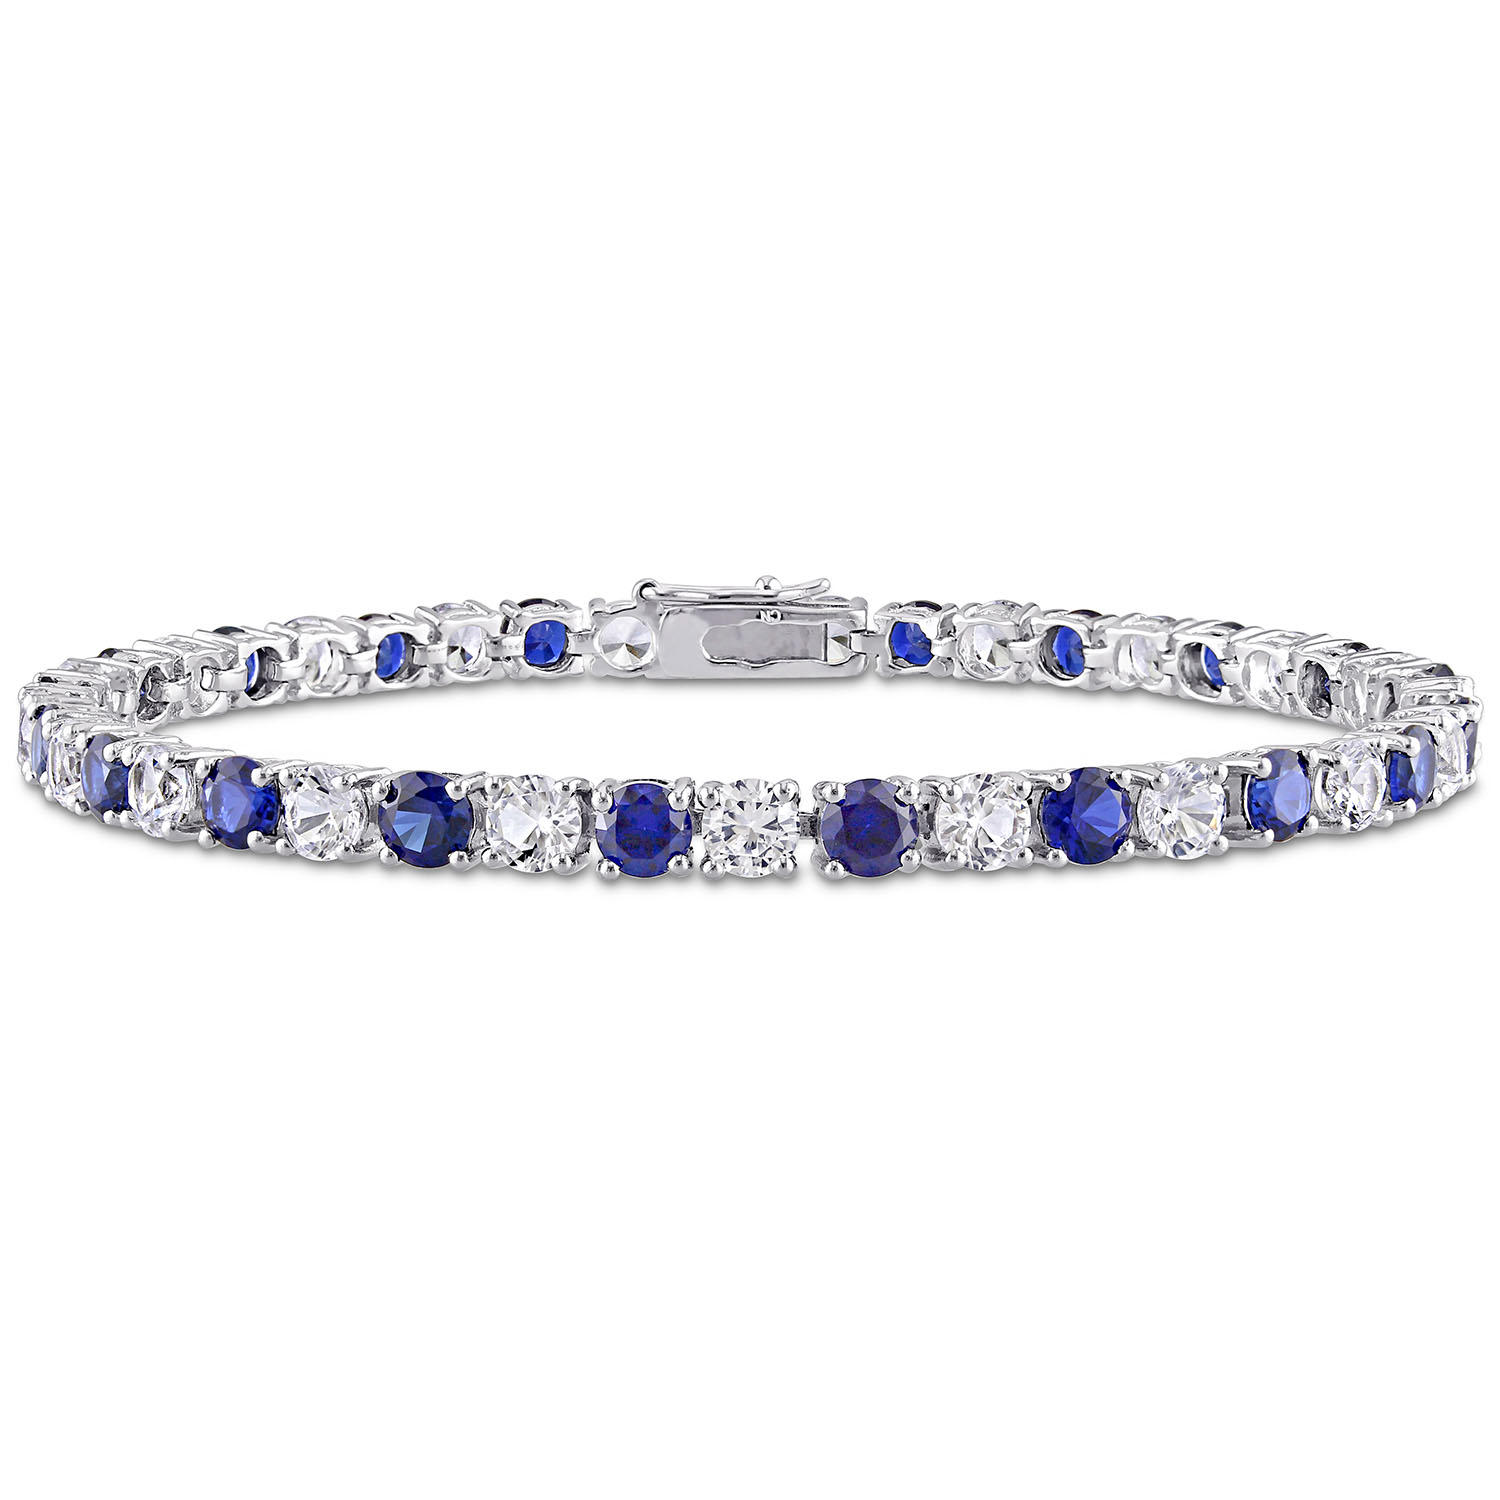 "Created Gemstone 7.25"" Tennis Bracelet in Sterling Silver"